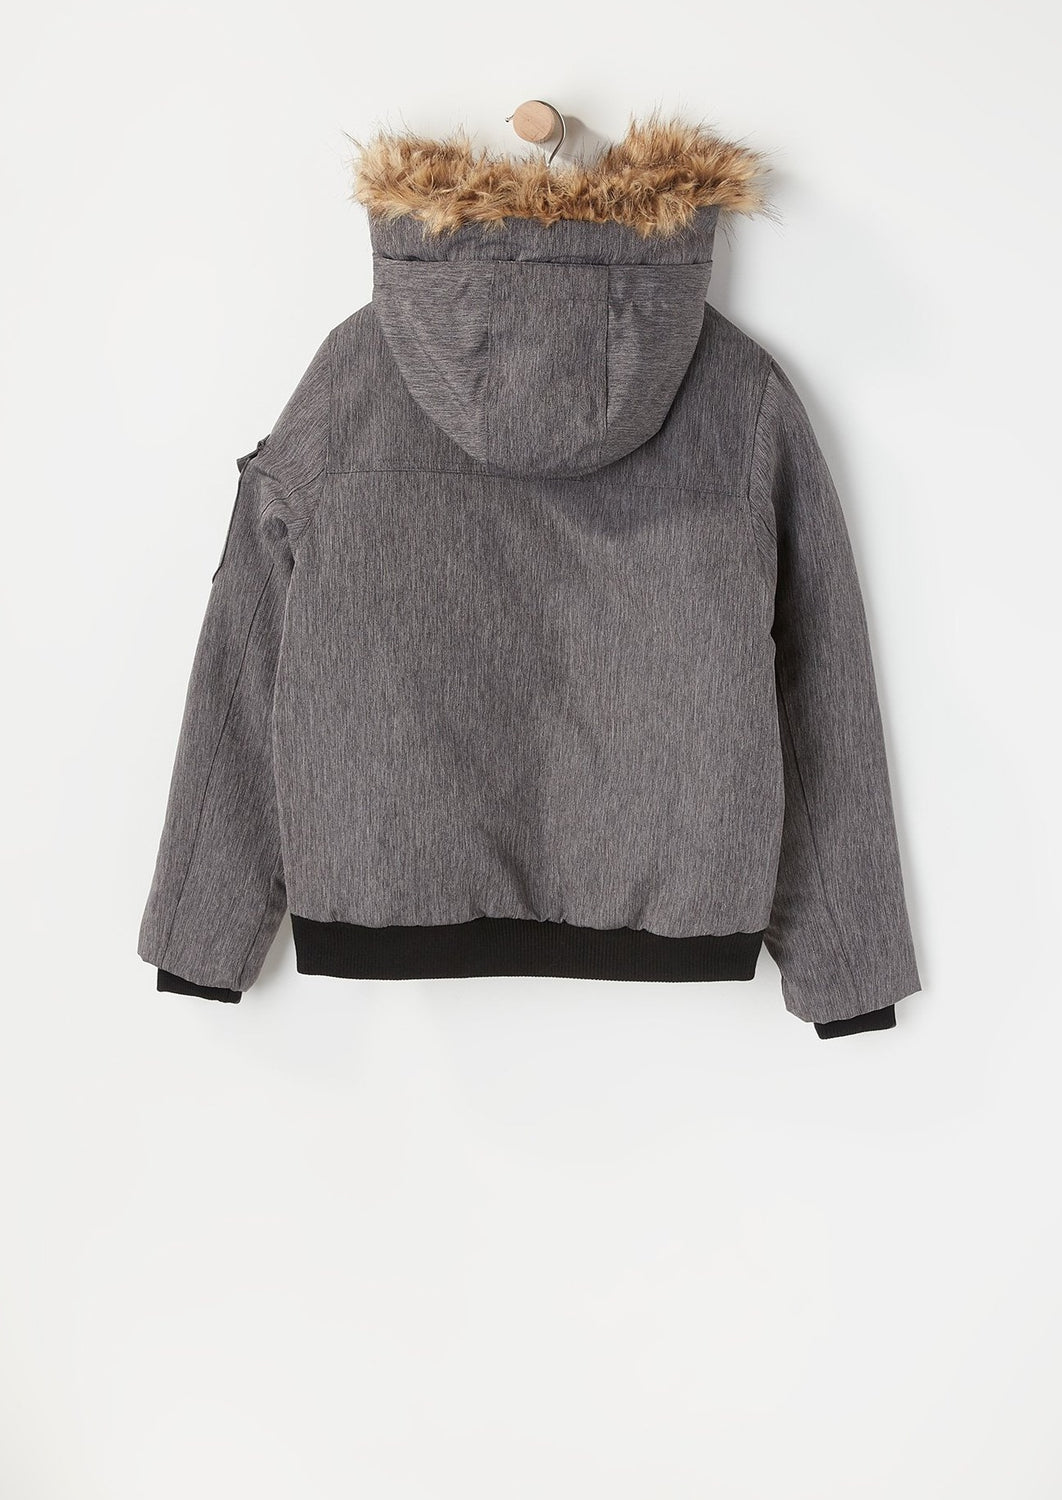 West49 Youth 4 Bomber Jacket Charcoal